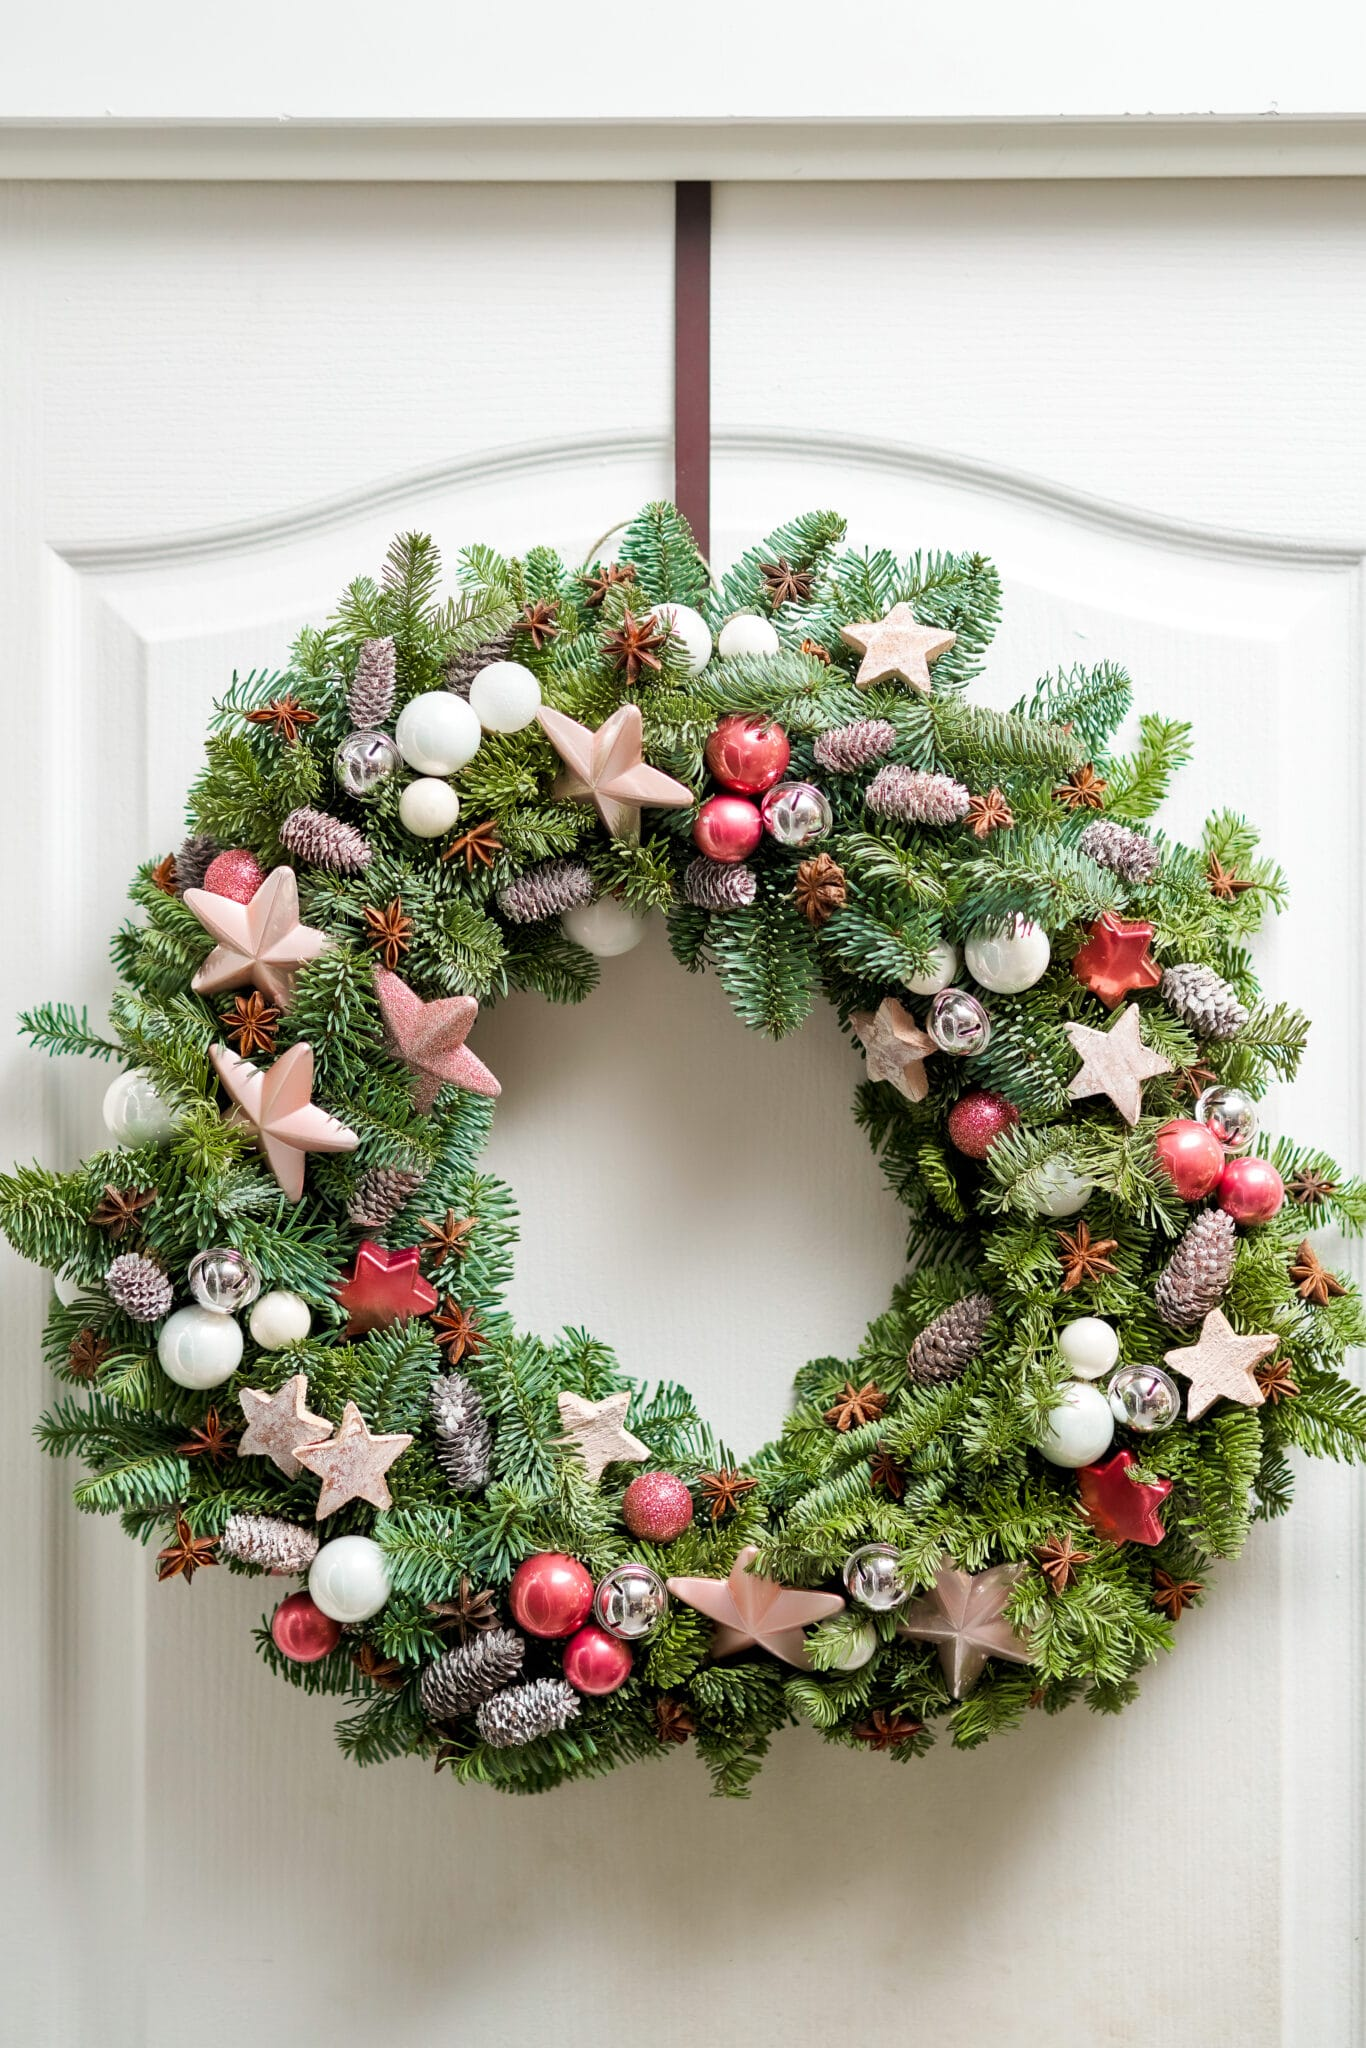 Beautiful Christmas wreath of fresh spruce on the white door. Entrance to the house.